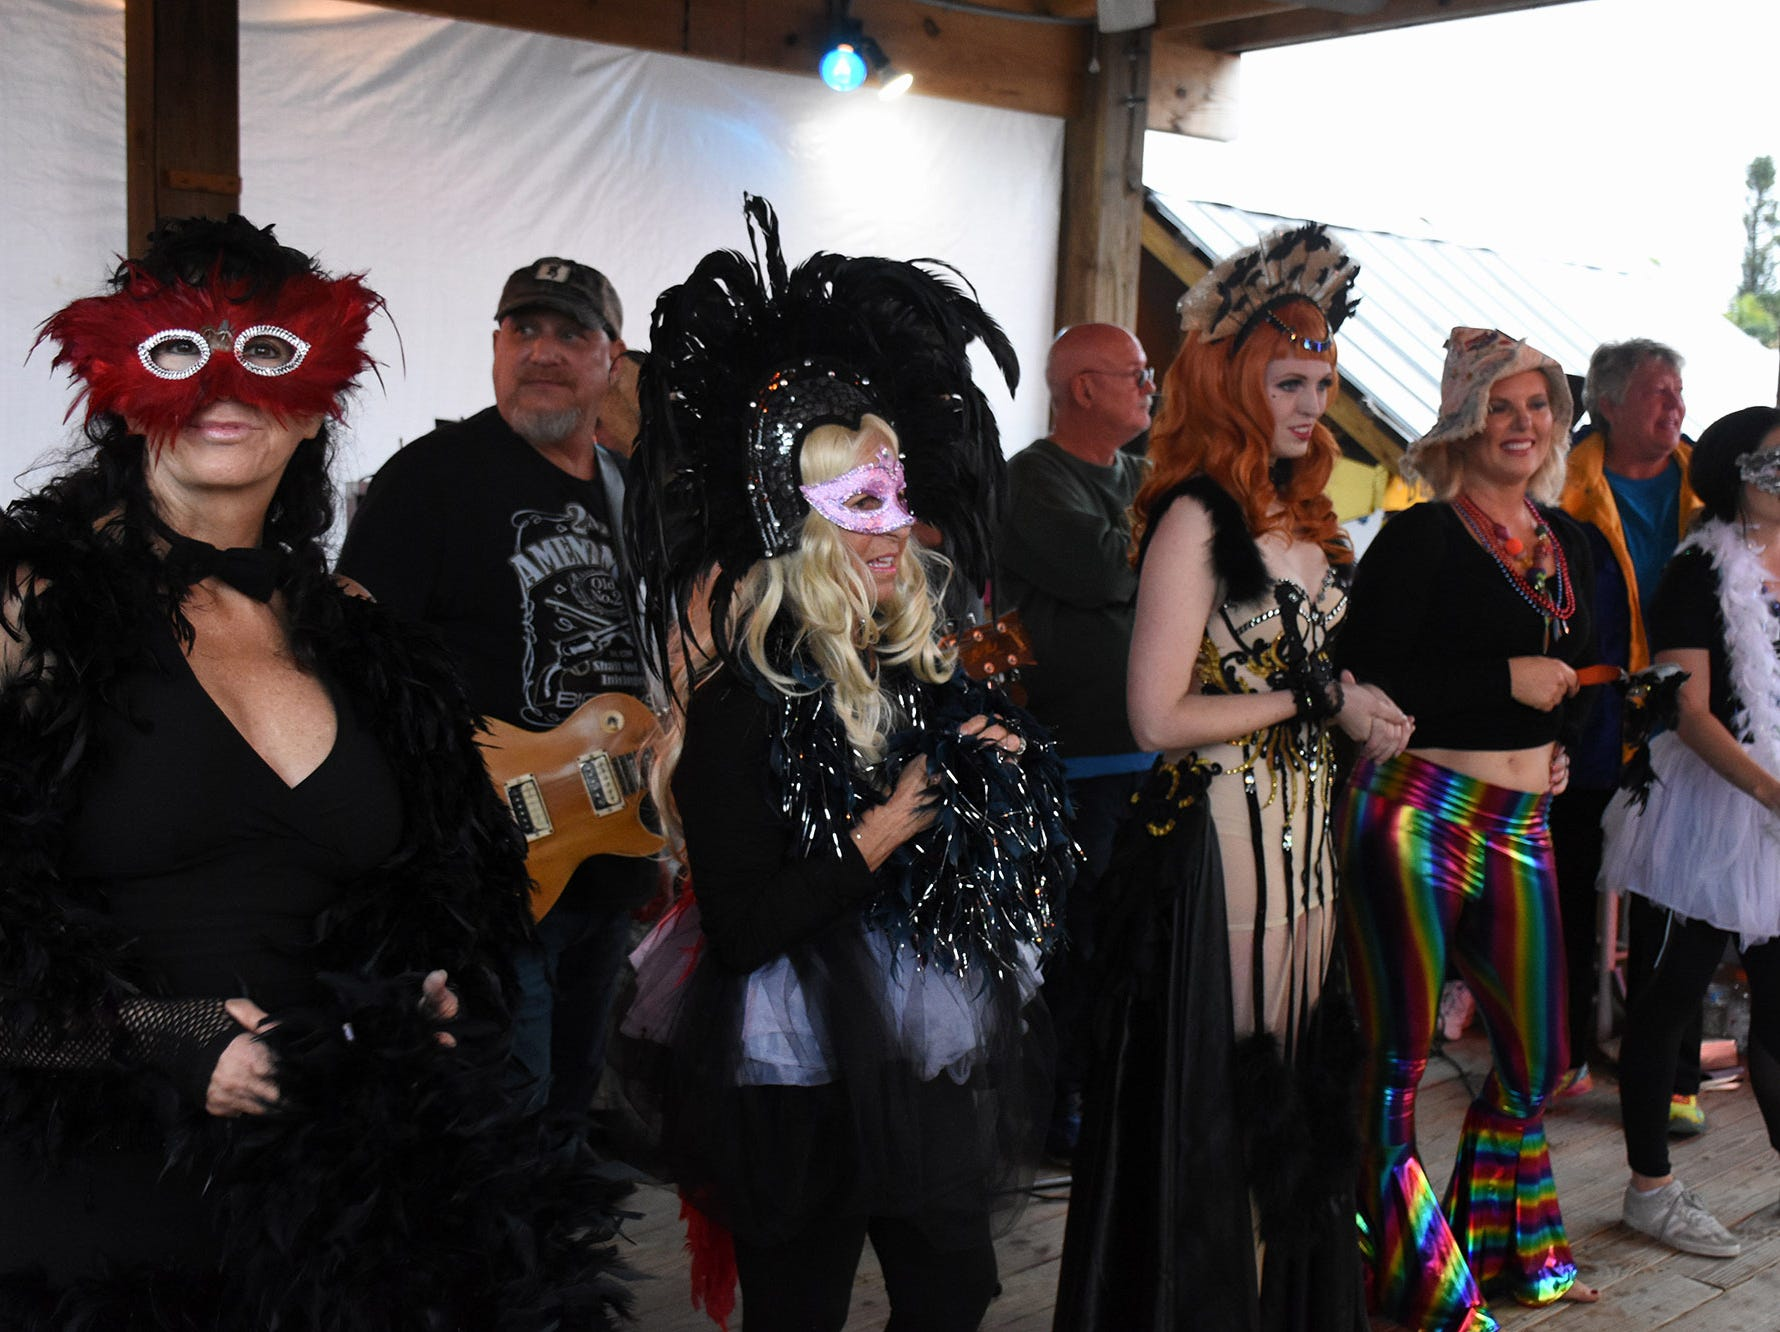 The lineup of final contestants onstage. Stan's Idle Hour restaurant held The 35th annual Mullet Festival over the weekend, a rain and beer-soaked celebration.